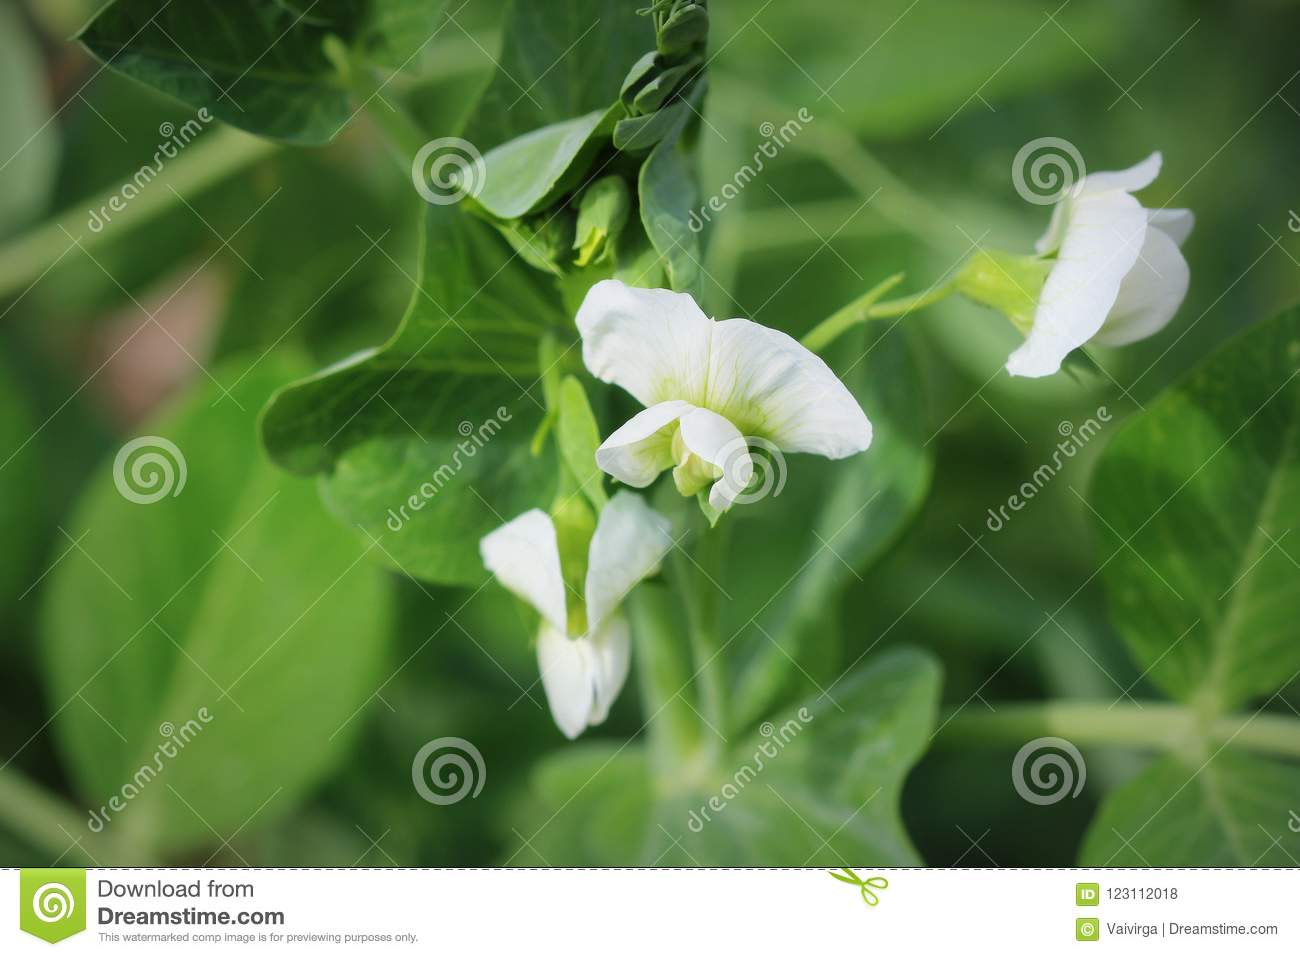 Green Pea Plant With White Flower In A Garden Stock Photo Image Of